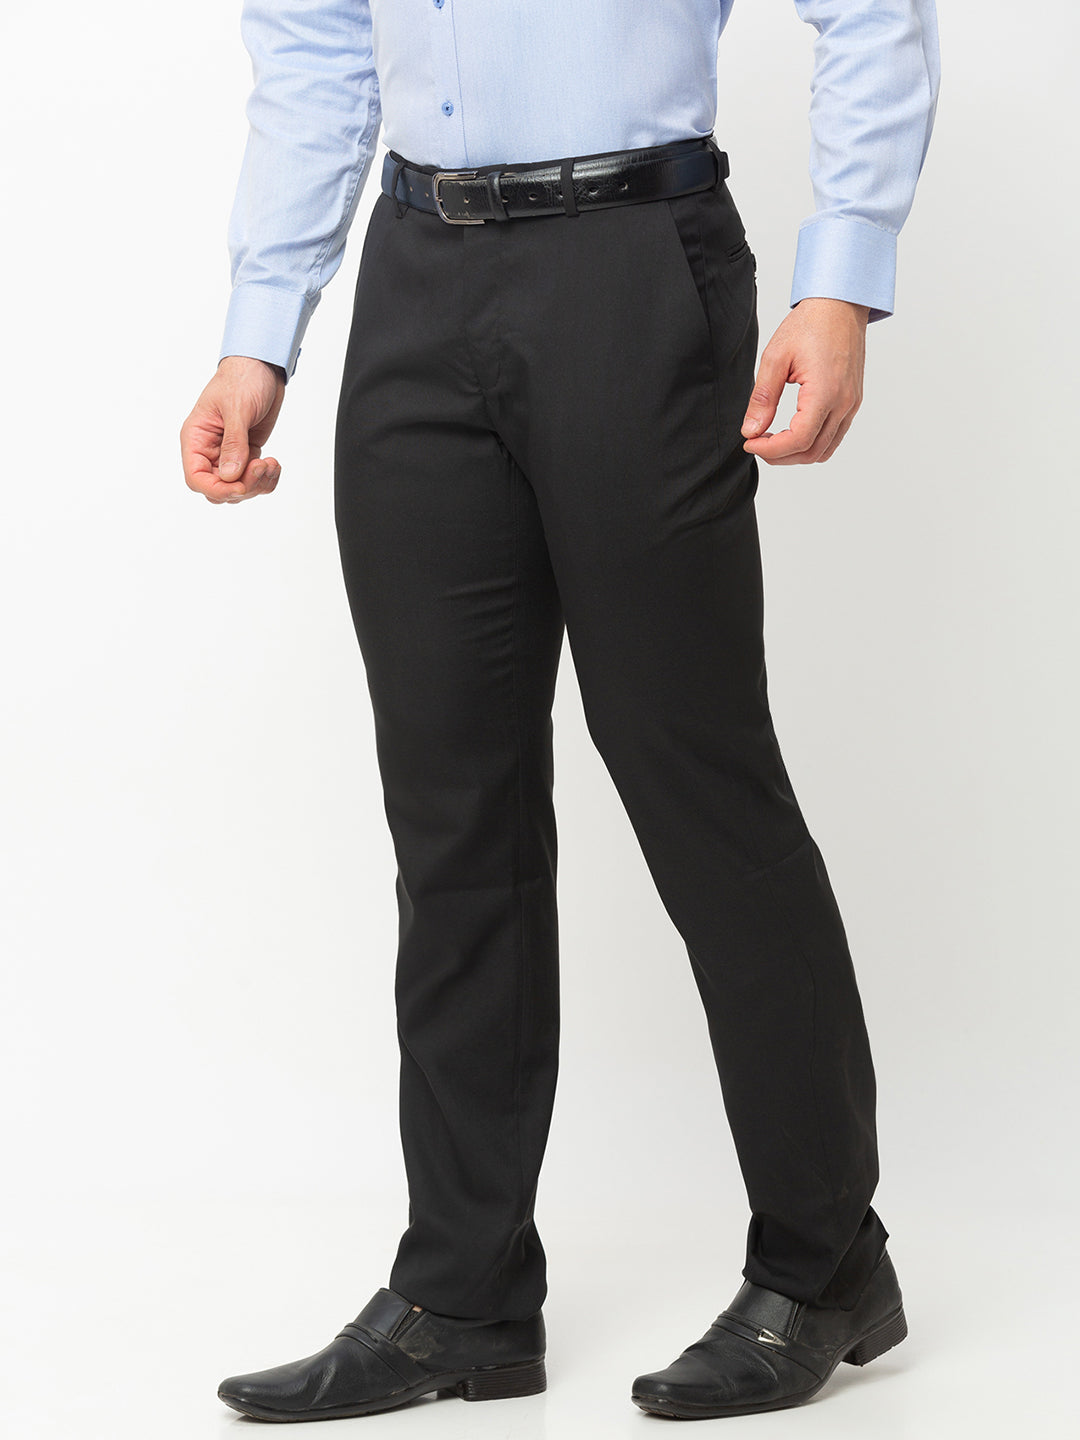 Globus Black Solid Trousers-2